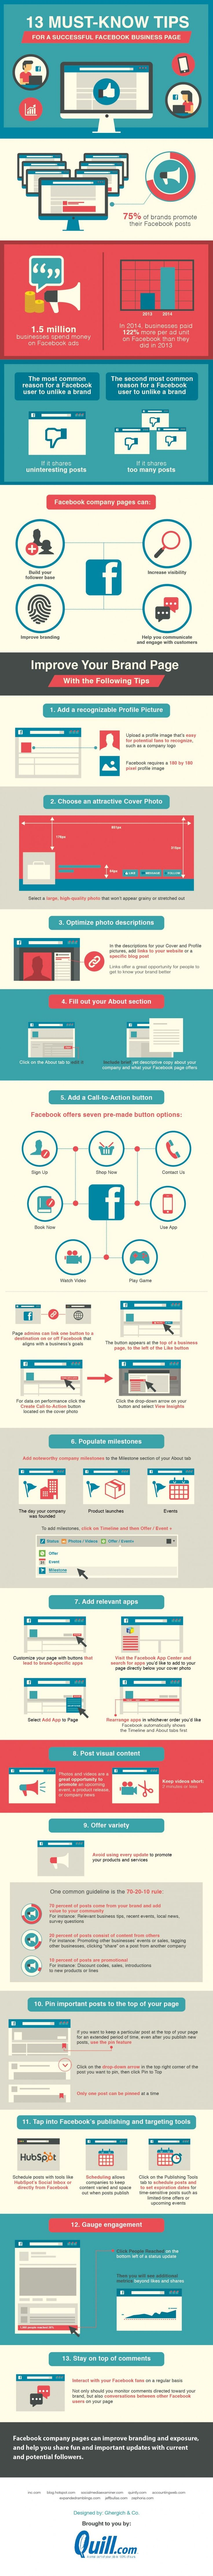 facebook-page-tips-infographic